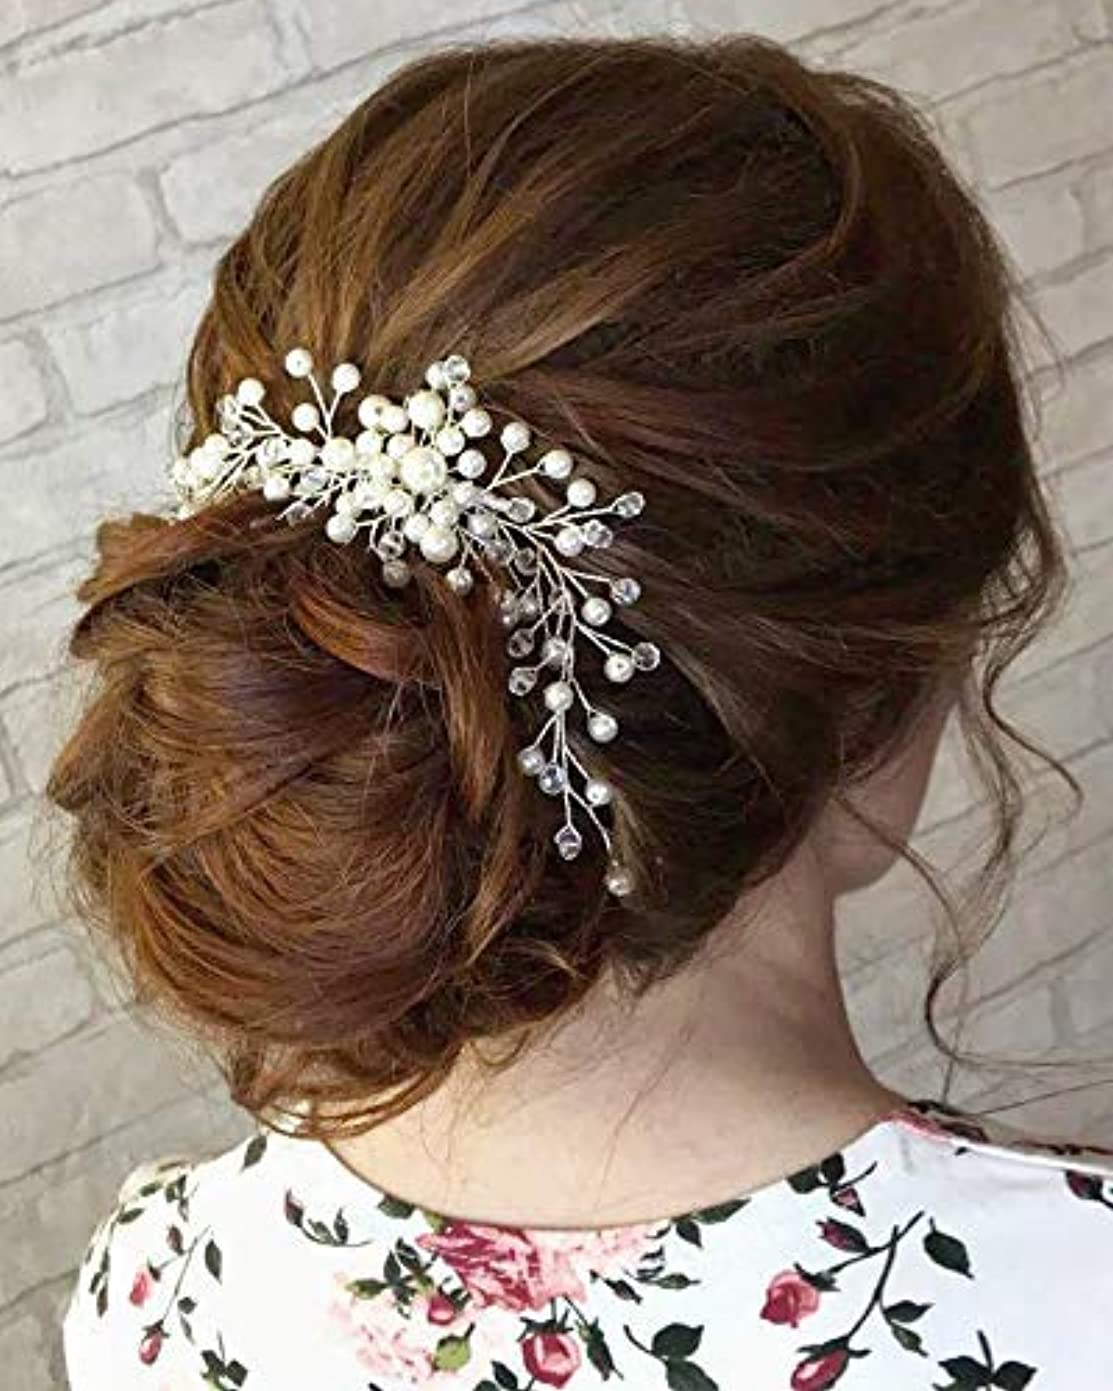 伝える対処水族館Kercisbeauty Wedding Simple Pearl Hair Comb for Brides Bridal Headpiece Long Curly Updo Hair Accessories Prom Hair Dress for Women(Silver) [並行輸入品]